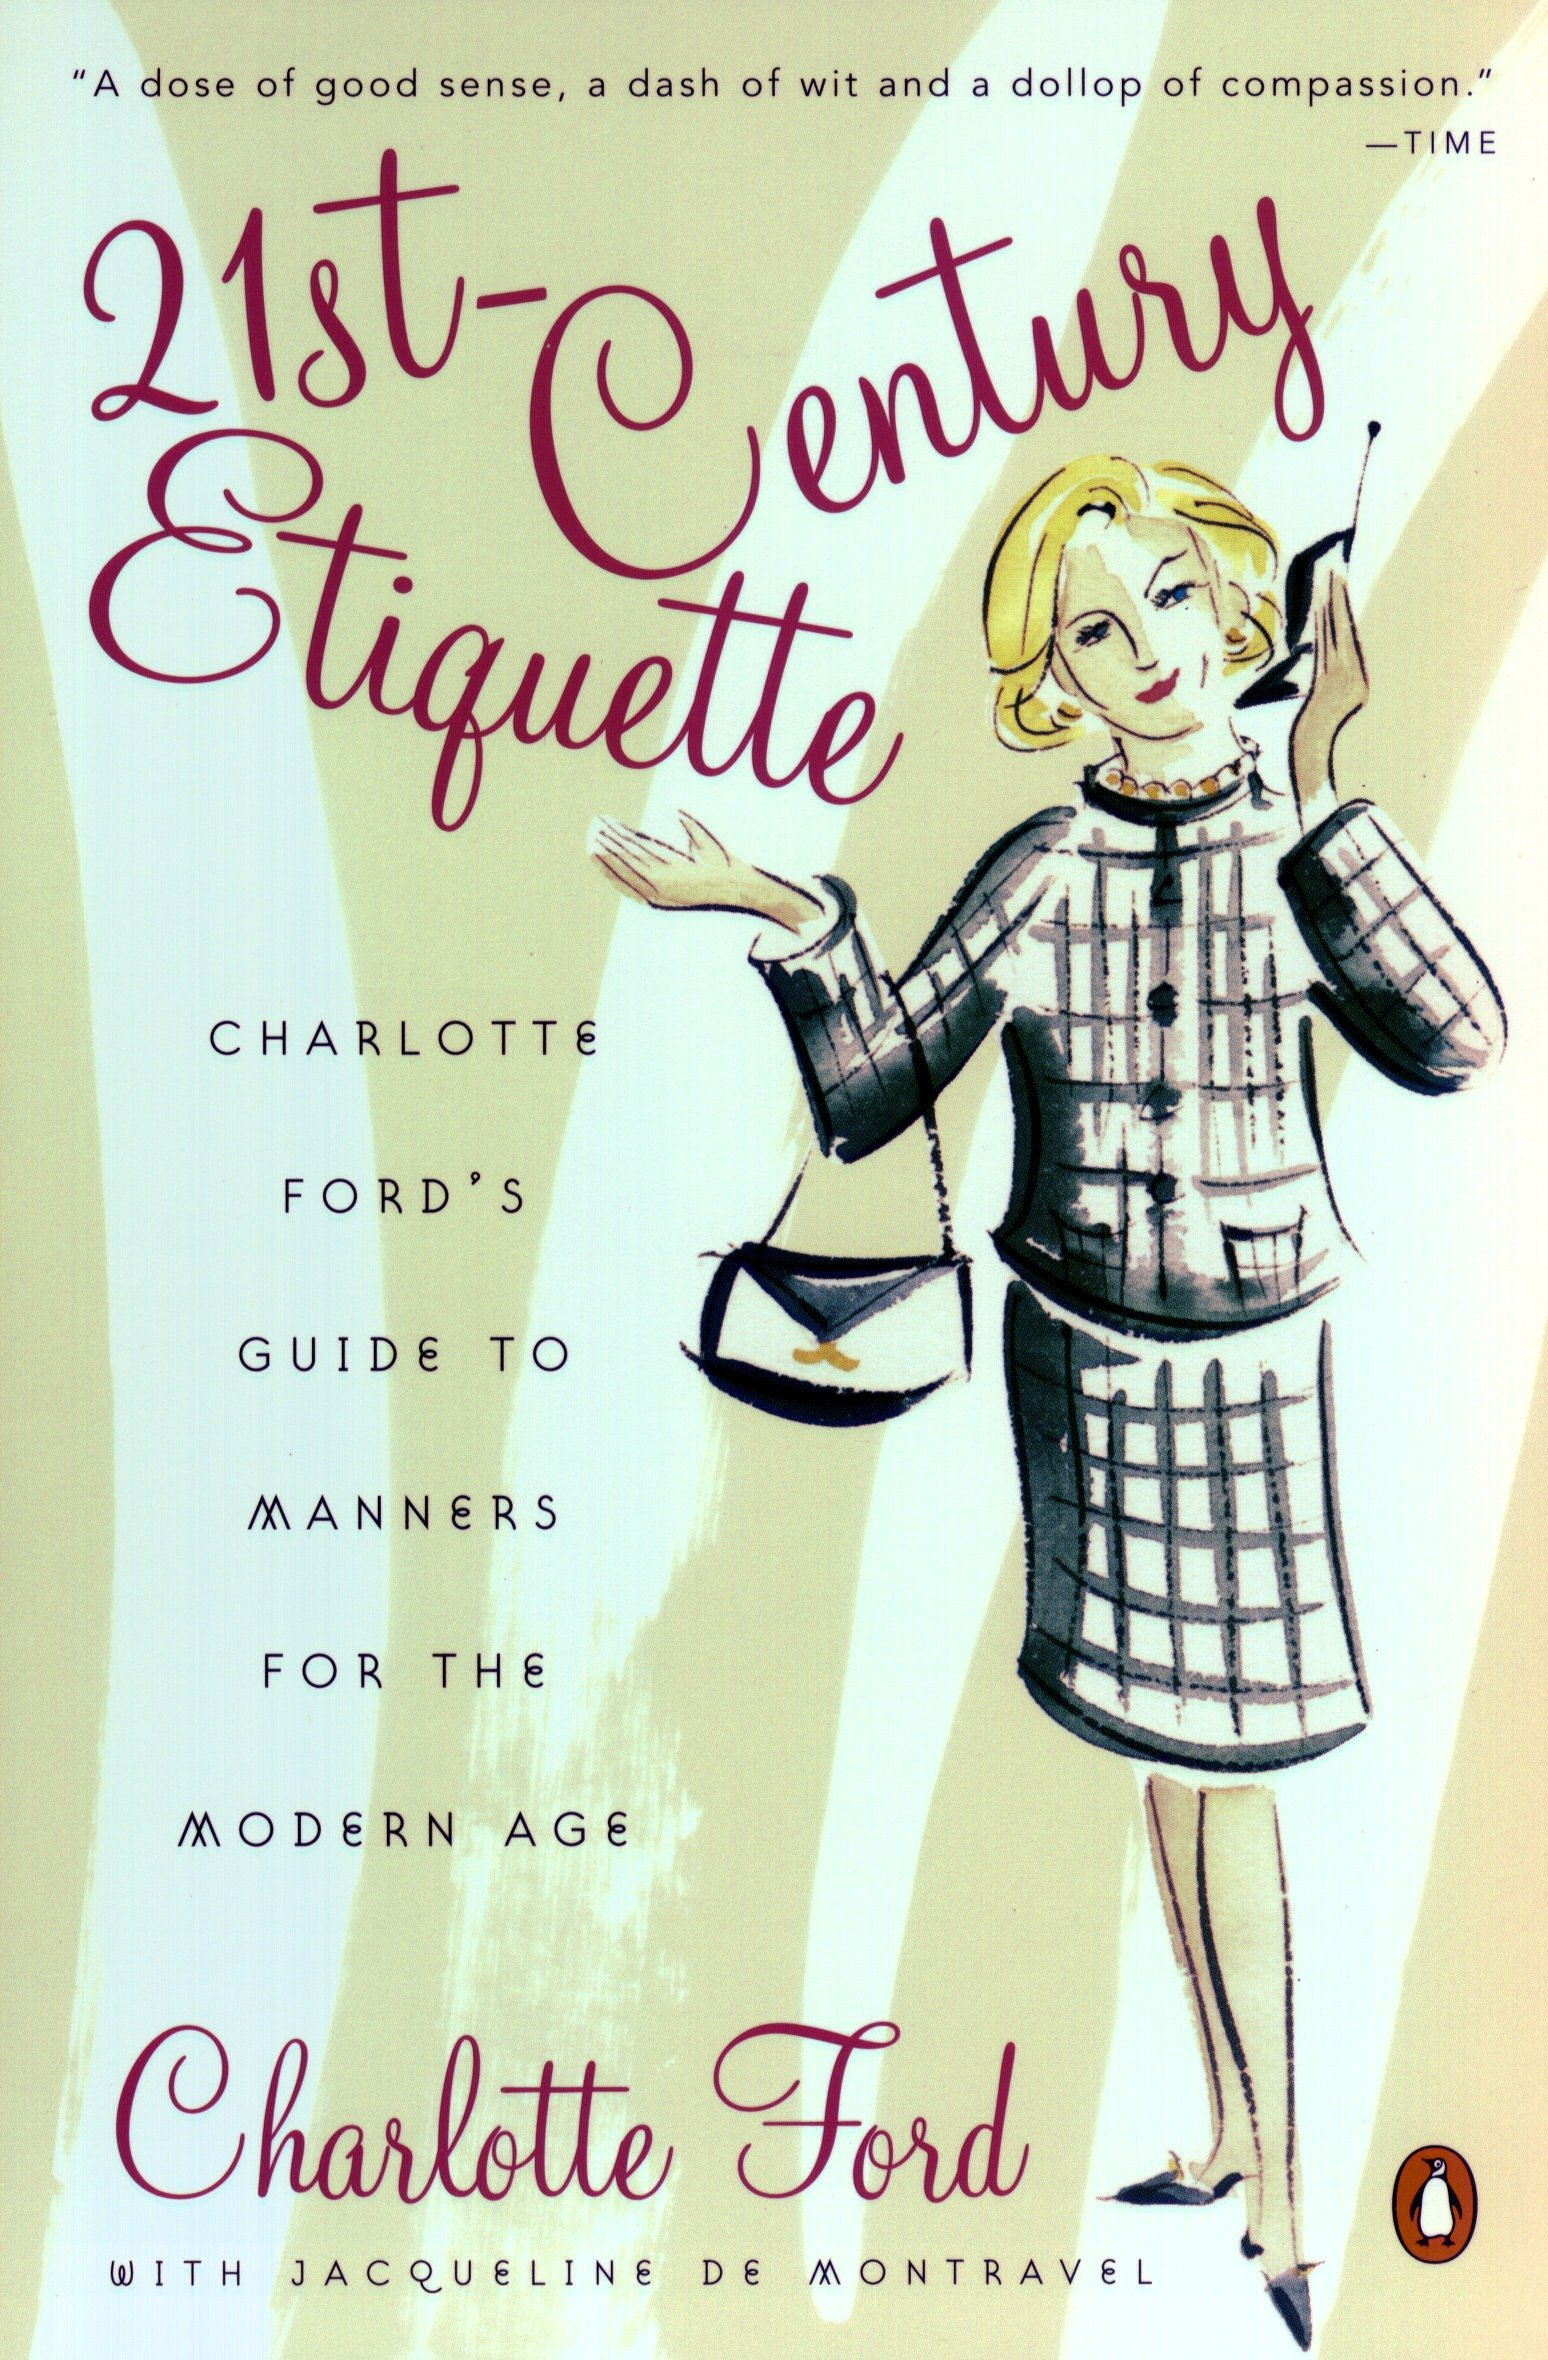 21st-Century Etiquette: Charlotte Ford's Guide to Manners for the Modern Age by Penguin Books